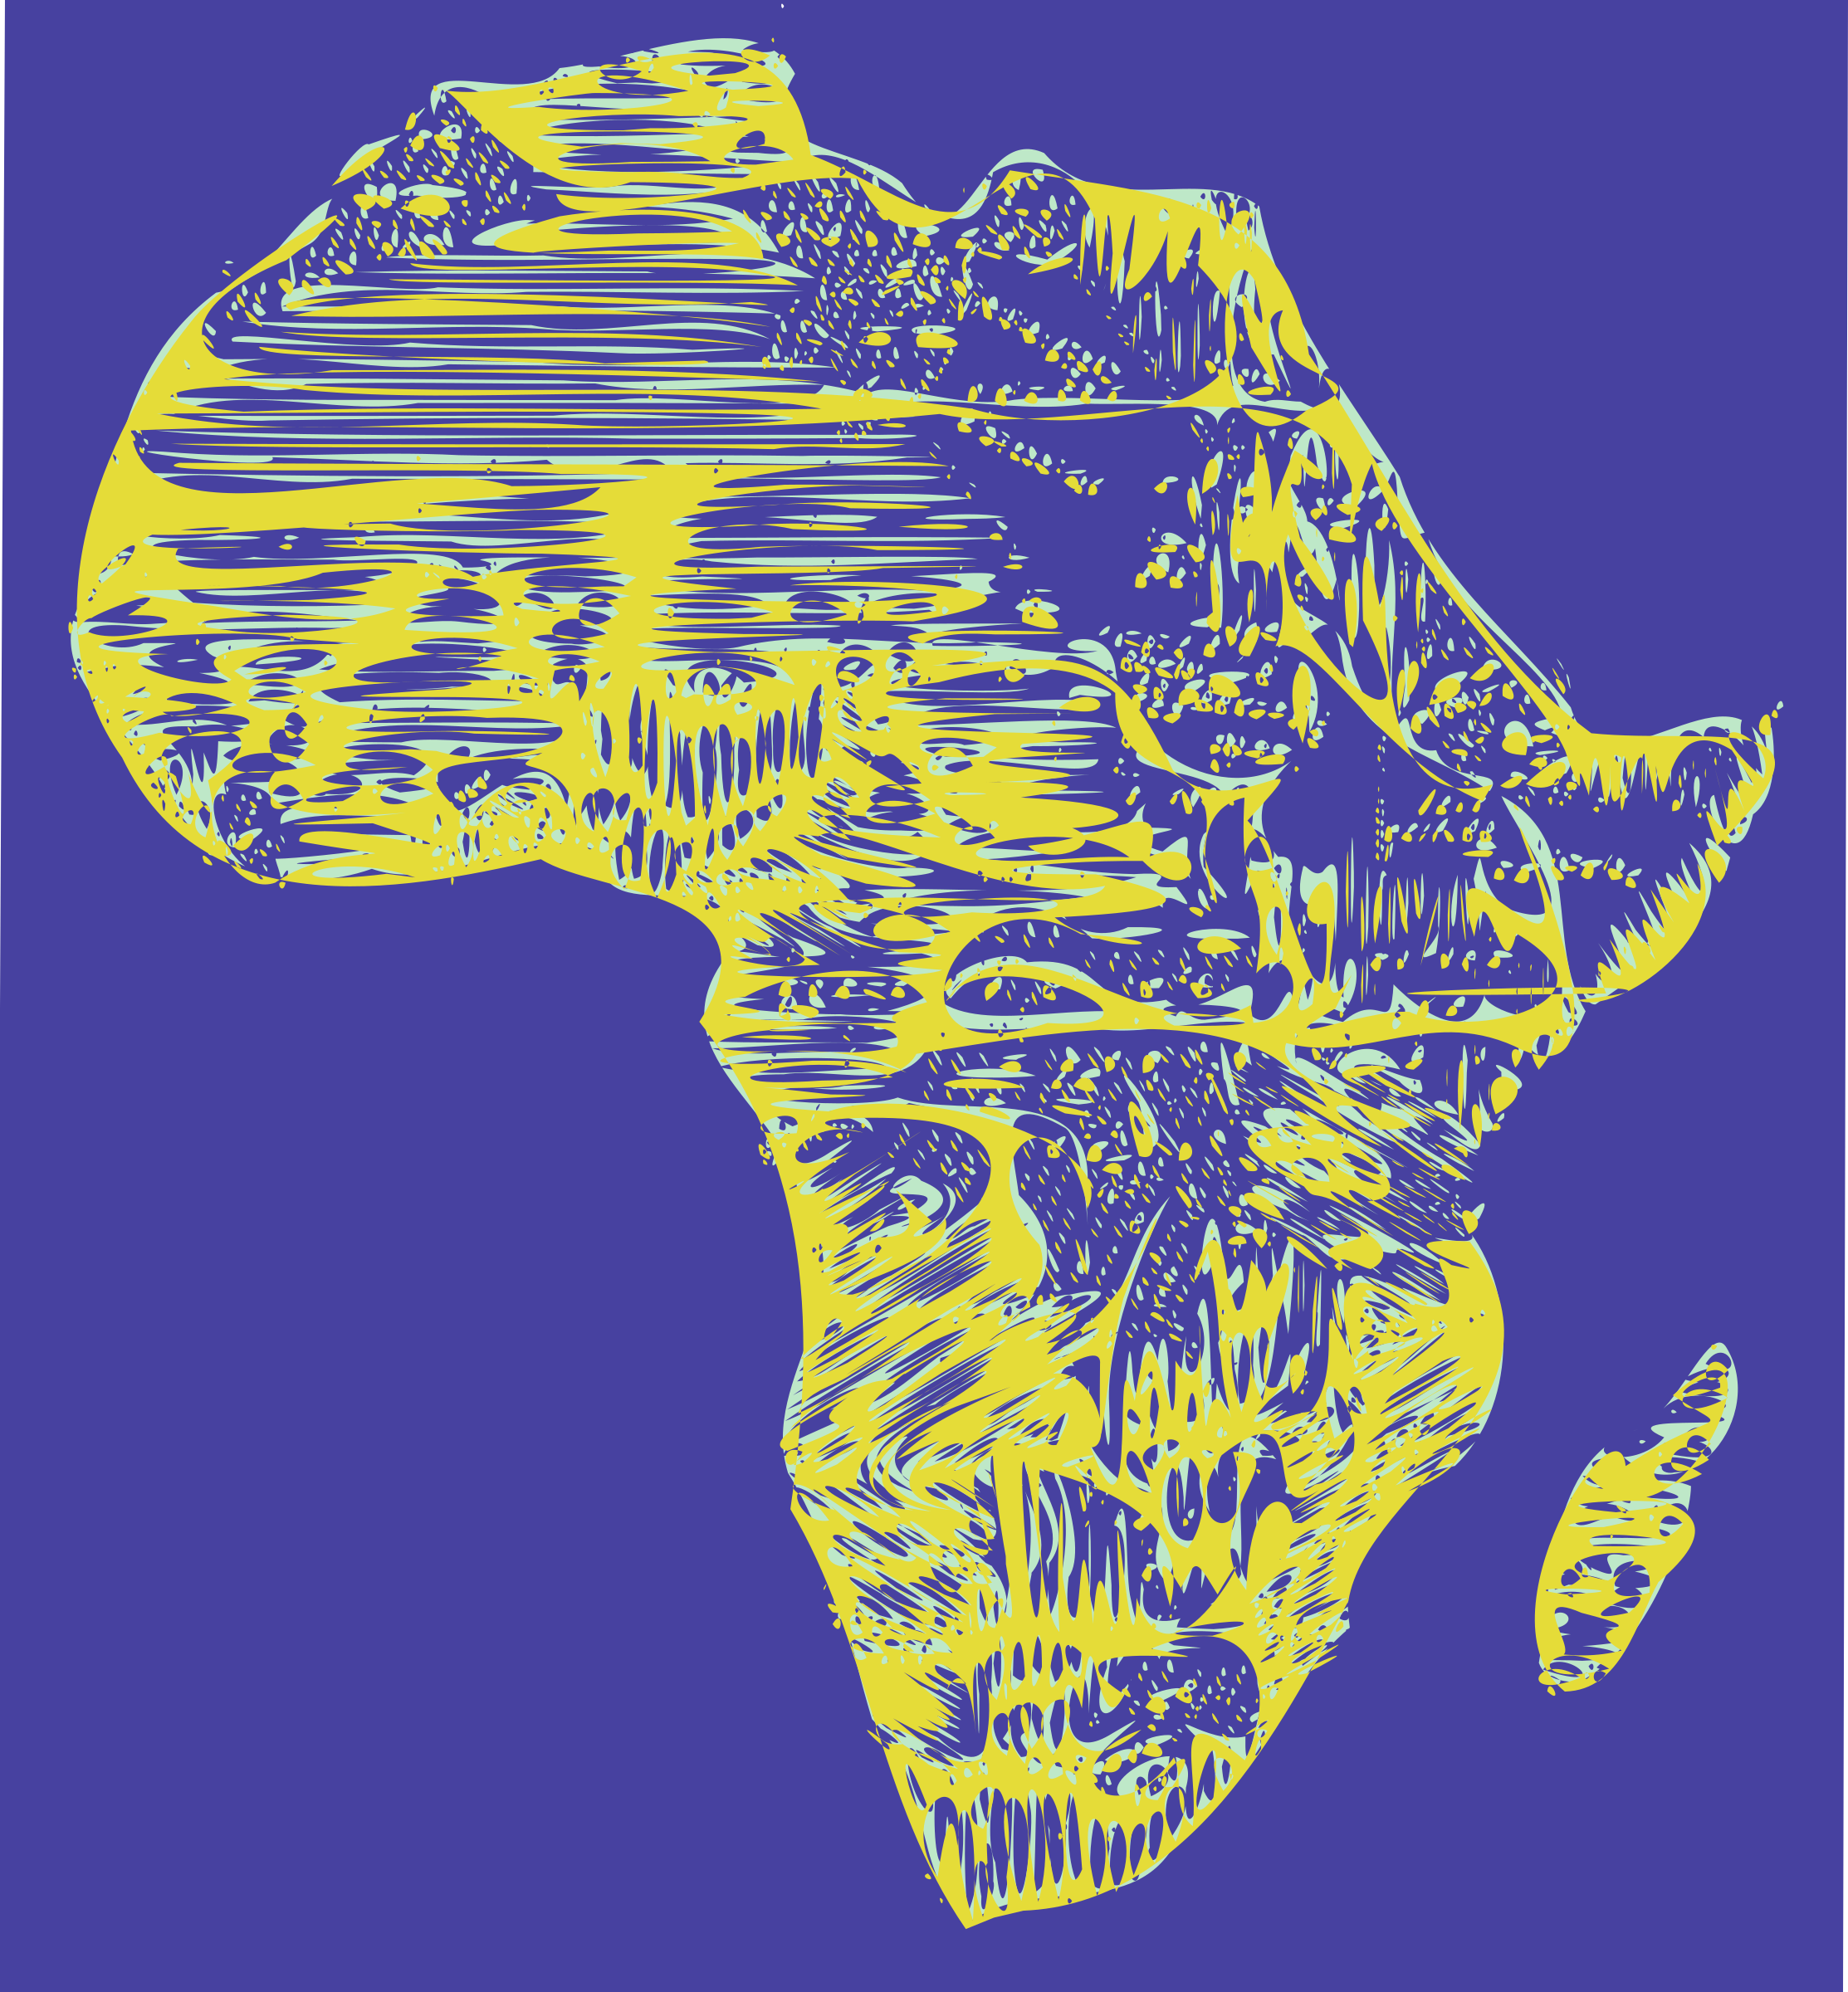 Africa big image png. African clipart abstract